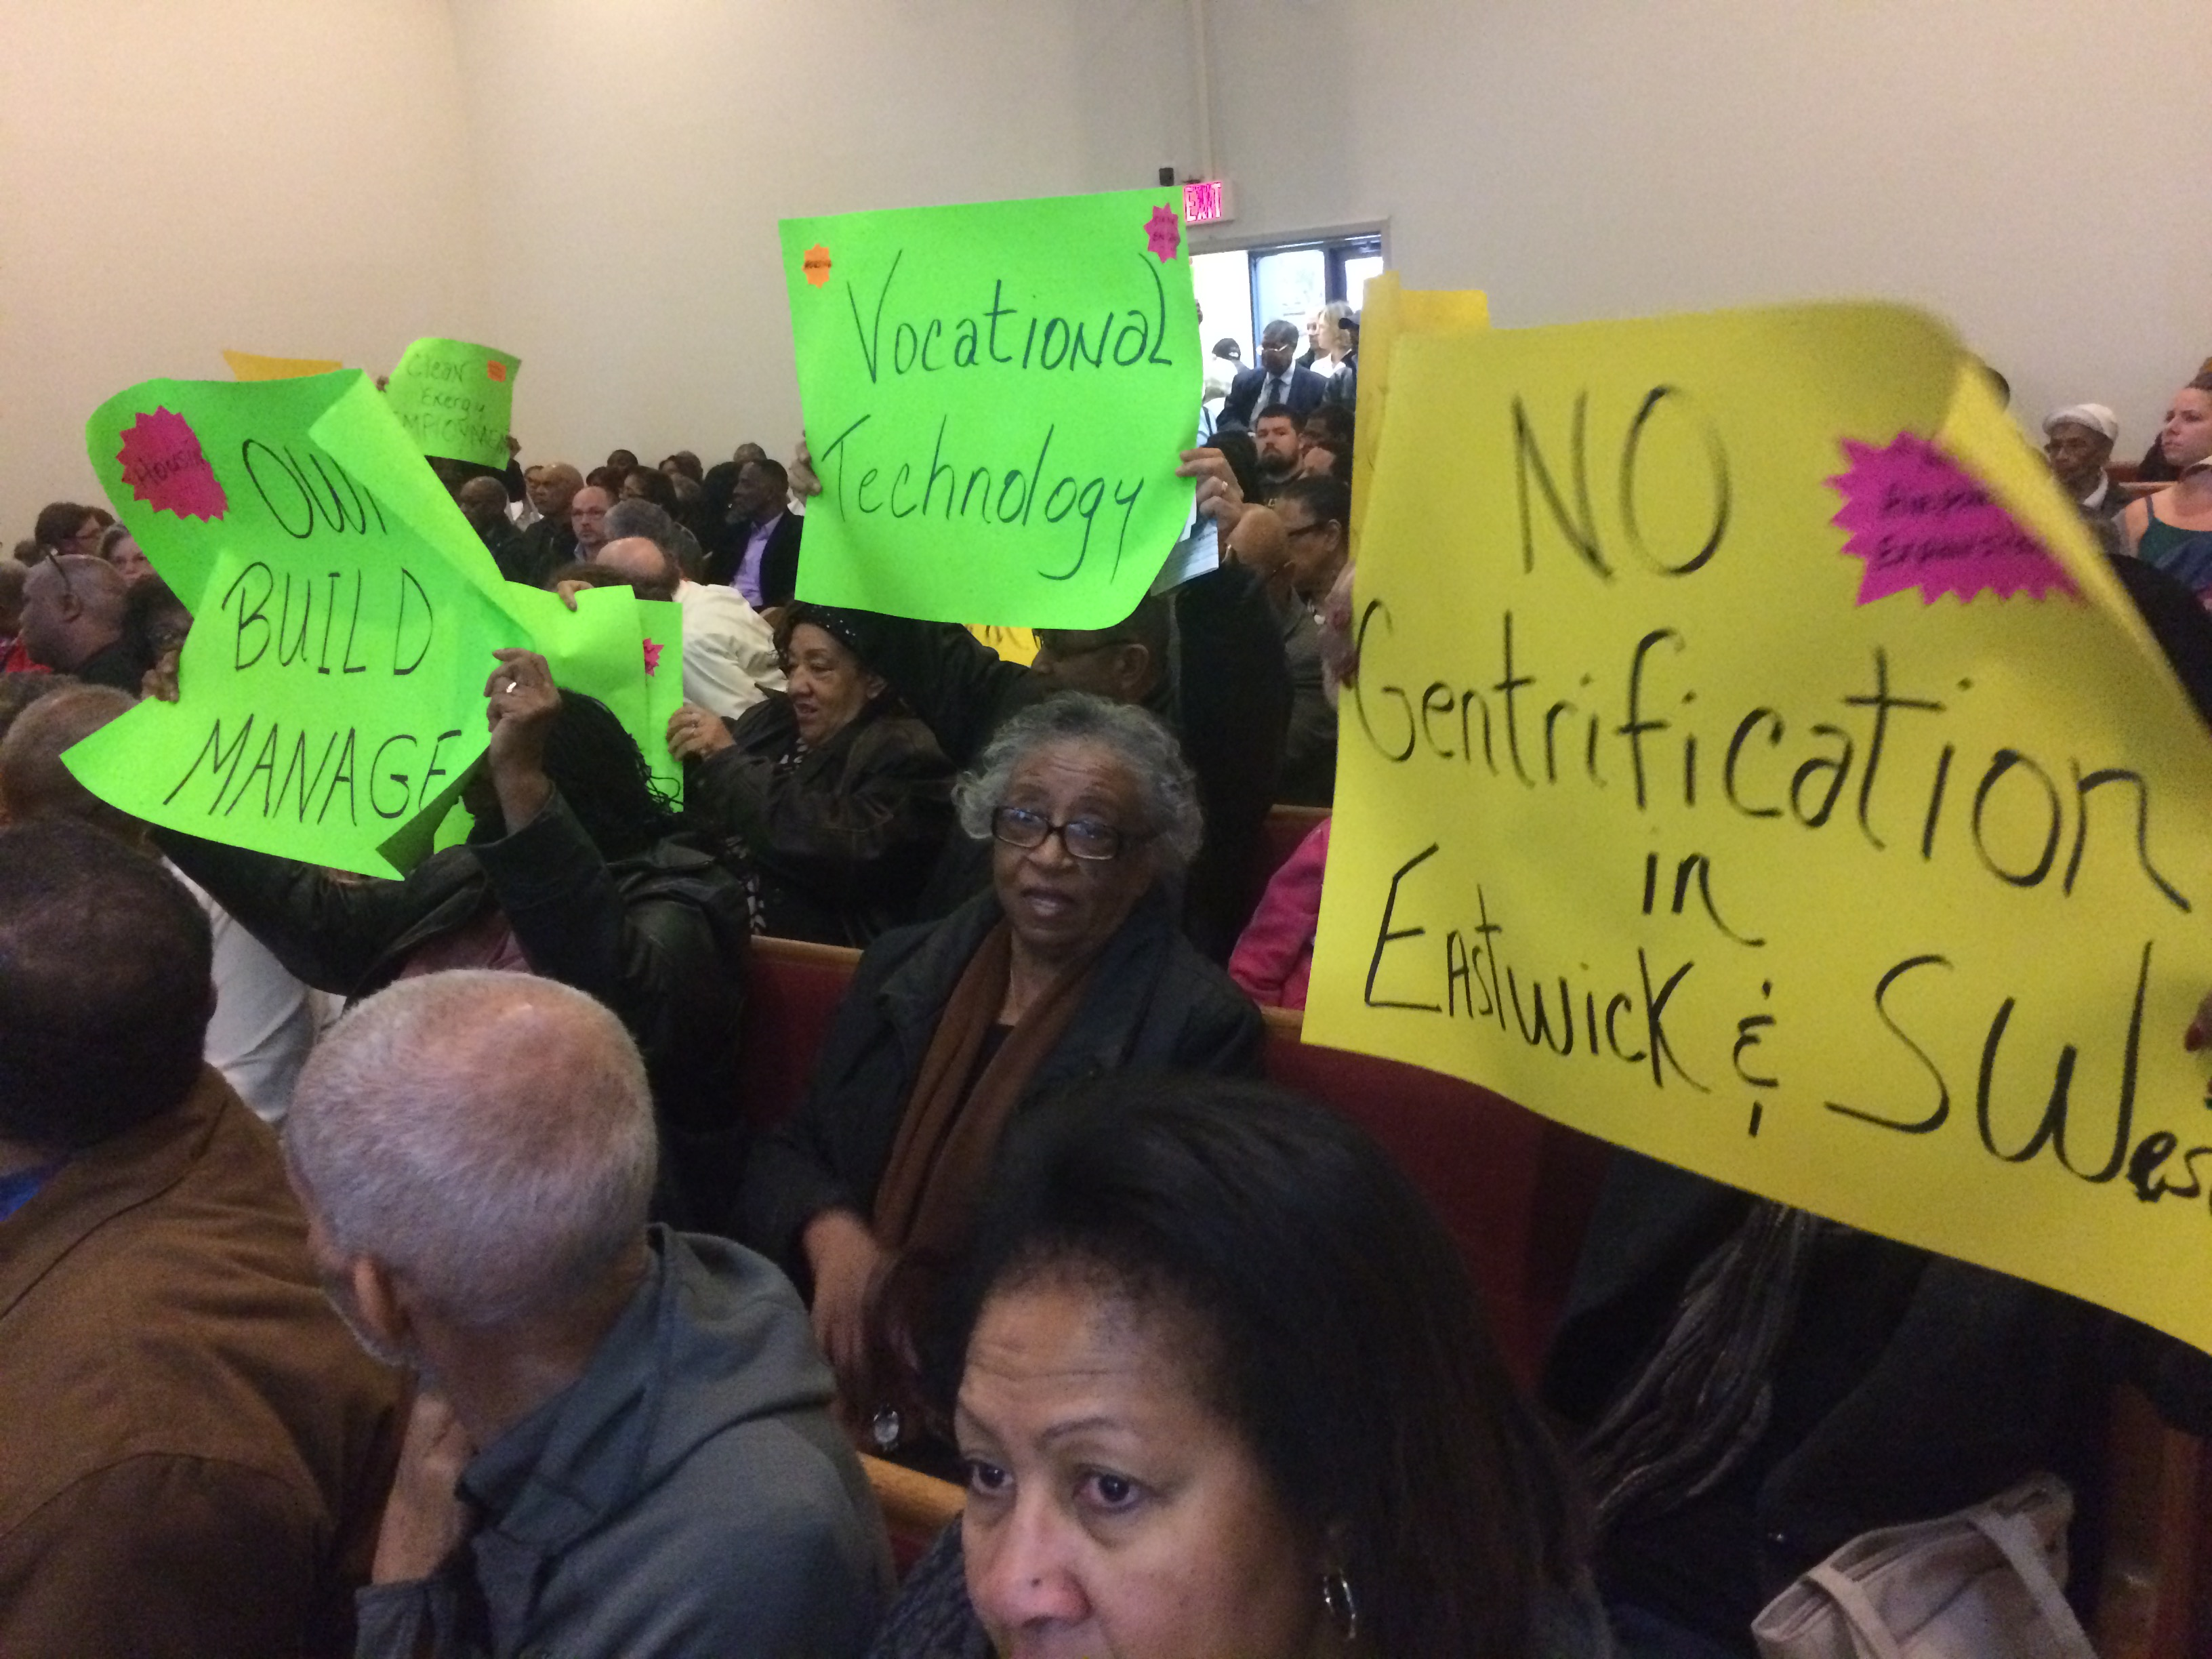 Eastwick's neighbors expressed their needs at public planning meeting